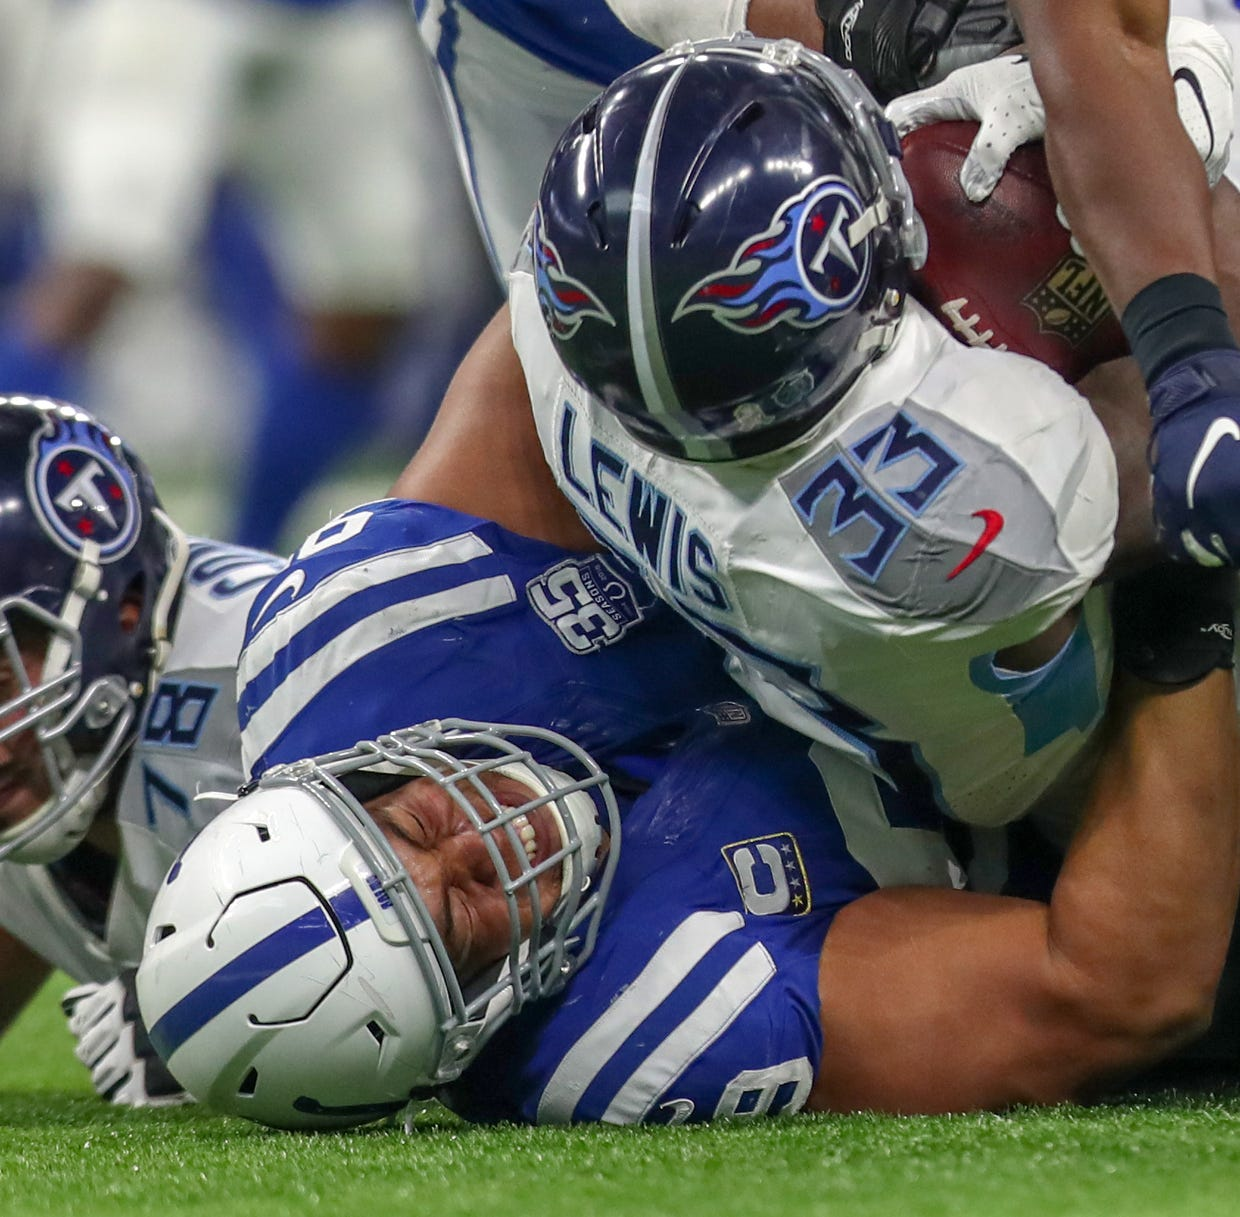 Colts roll to their 4th straight victory, 38-10 over the Titans